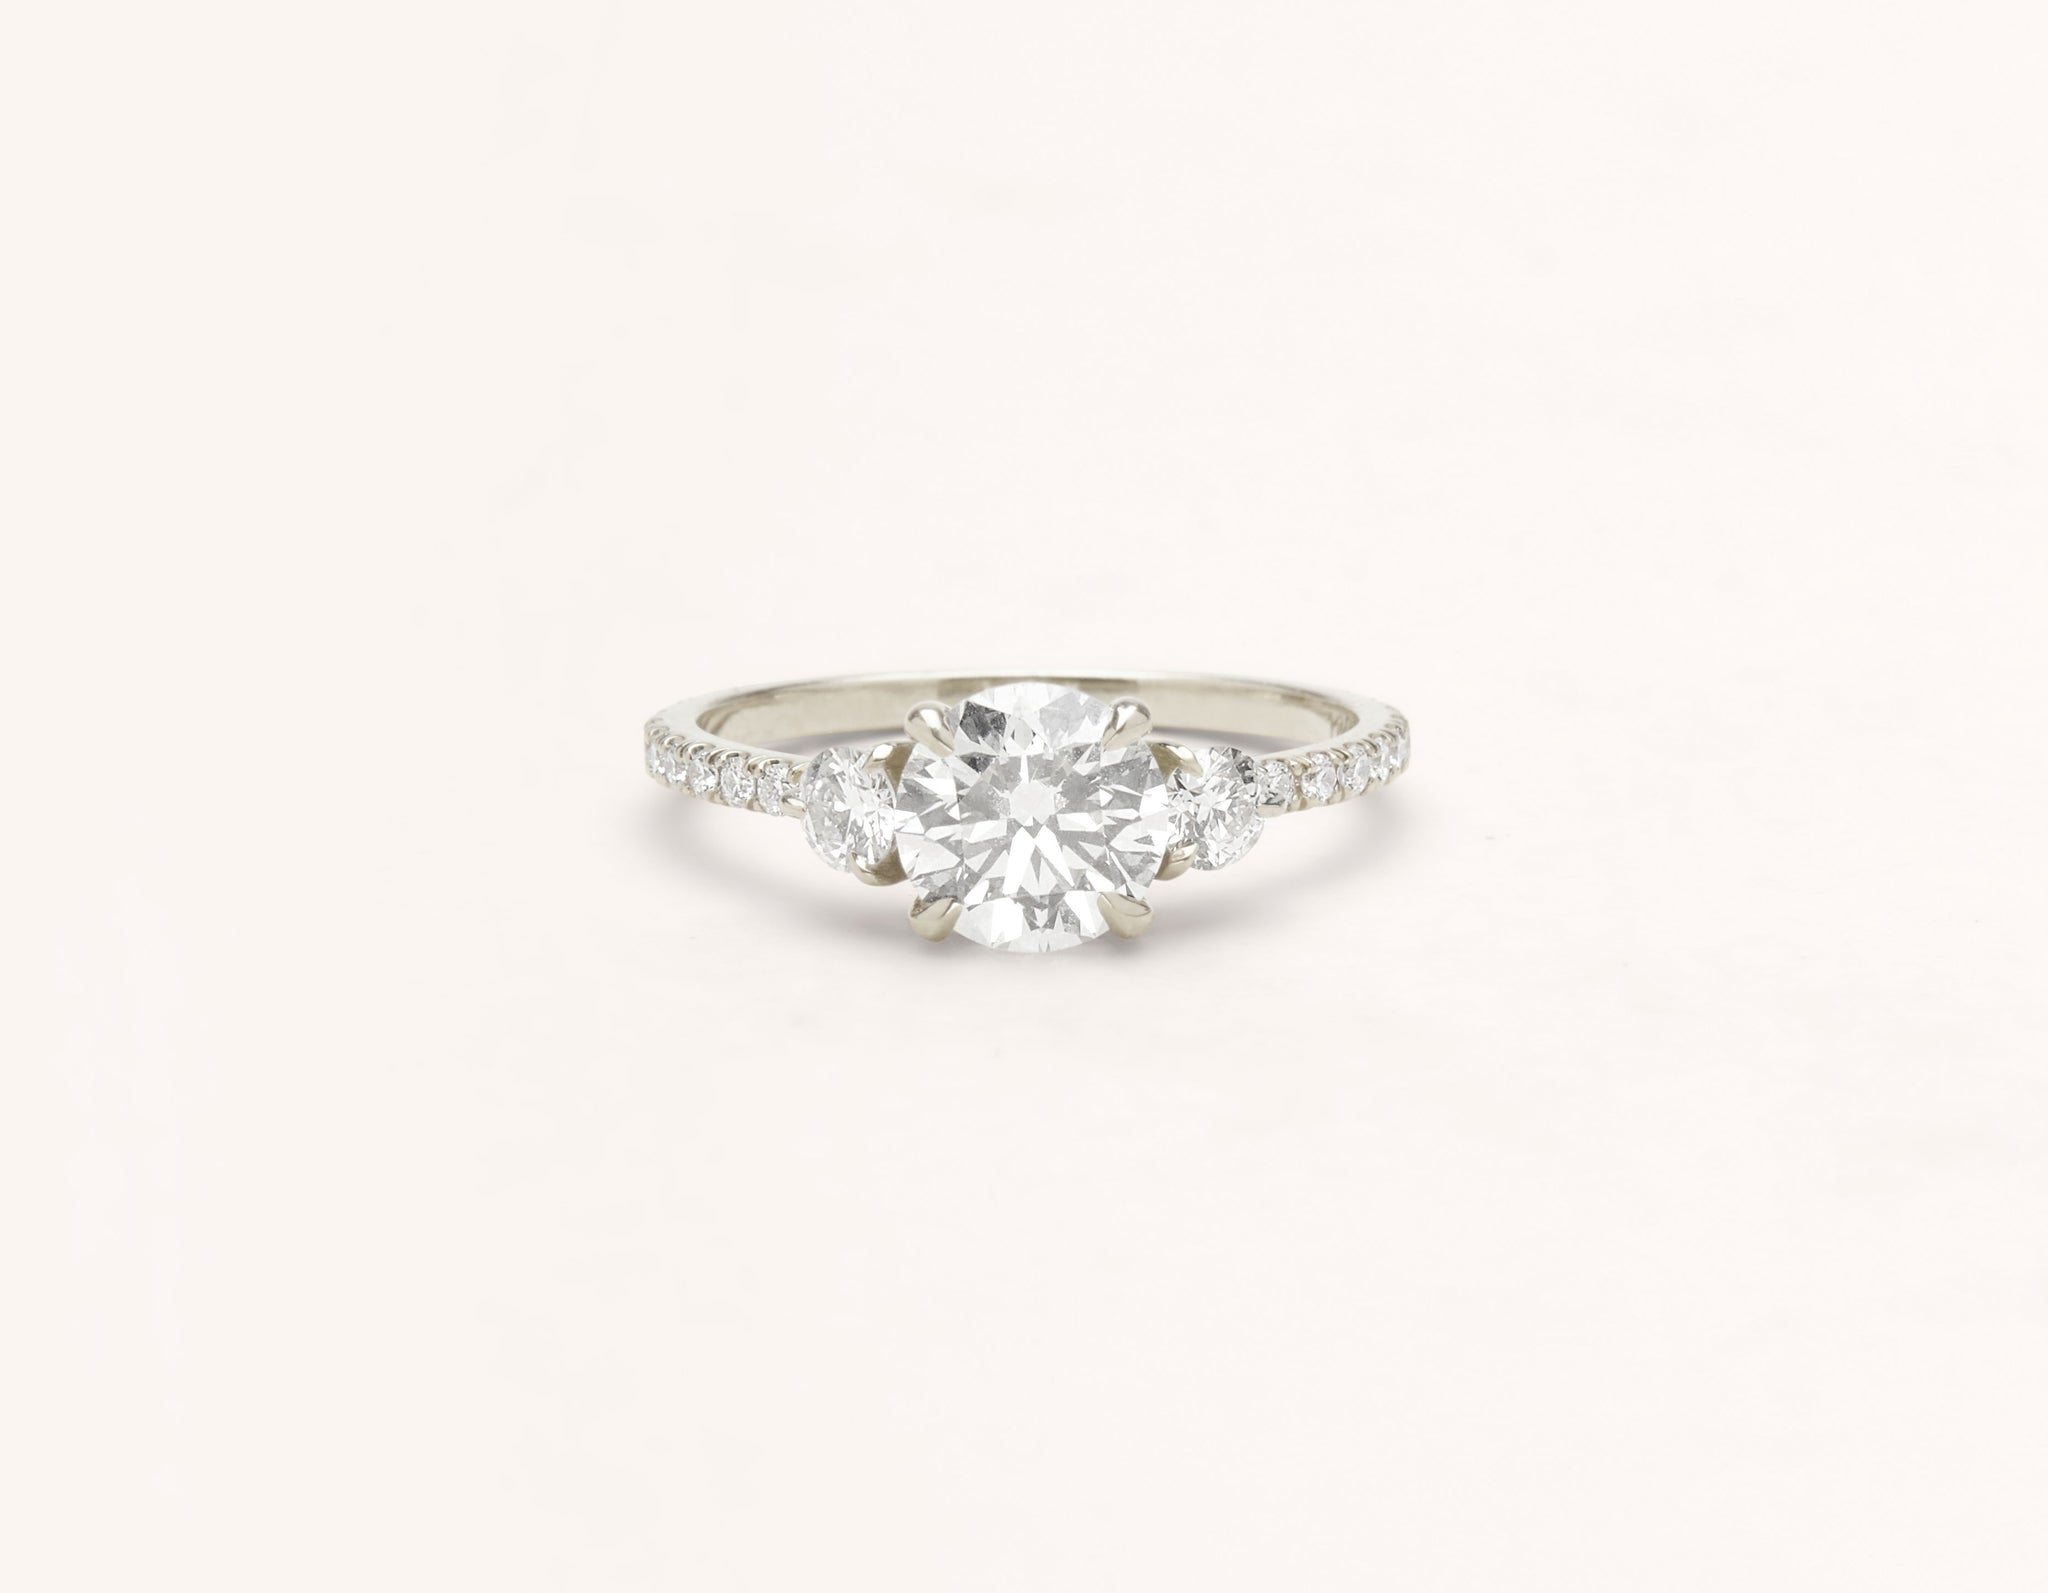 Minimalist 18k solid white gold The Three Stone pave engagement ring 1 ct round diamond Vrai and Oro